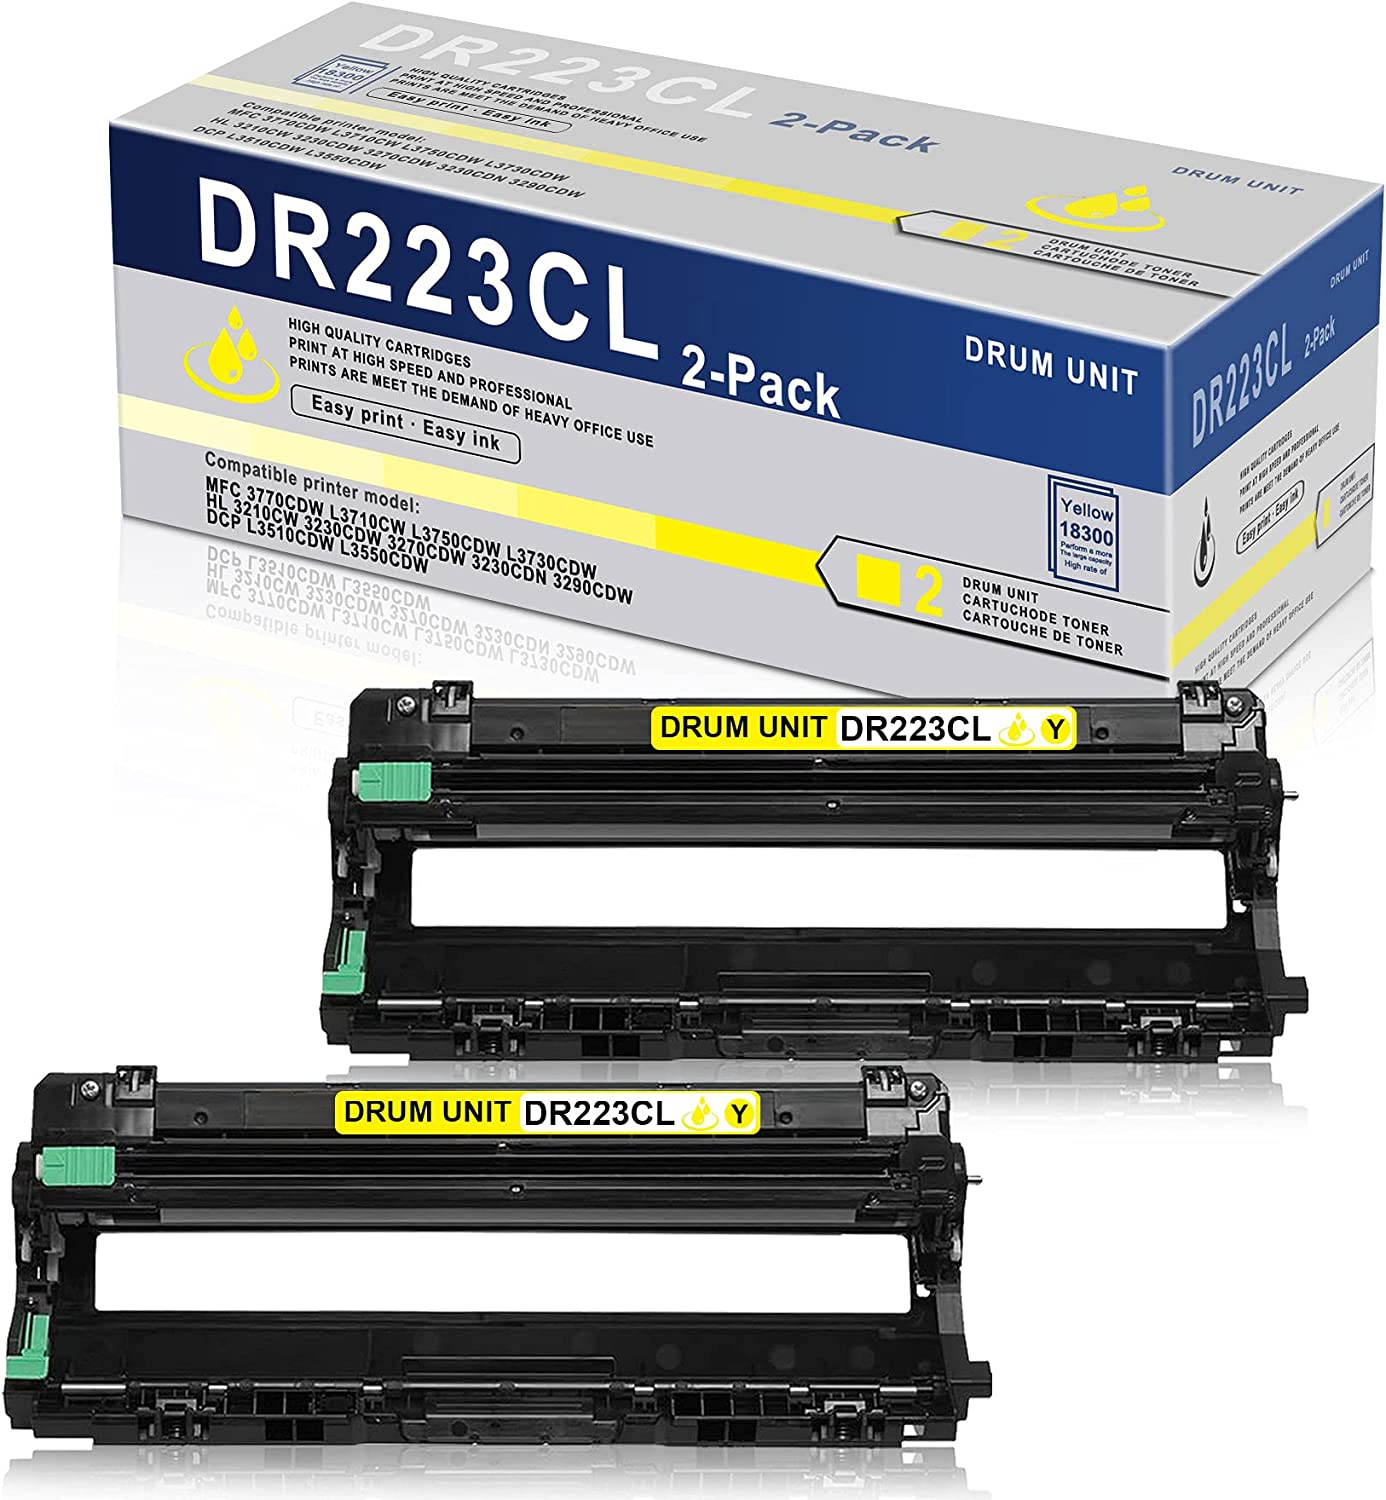 2 Pack Yellow Compatible High Yield Drum Unit DR223CL DR-223CL Replacement for Brother MFC 3770CDW L3710CW L3750CDW L3730CDW HL 3210CW 3270CDW 3230CDN 3290CDW DCP L3510CDW L3550CDW Printer Drum Unit